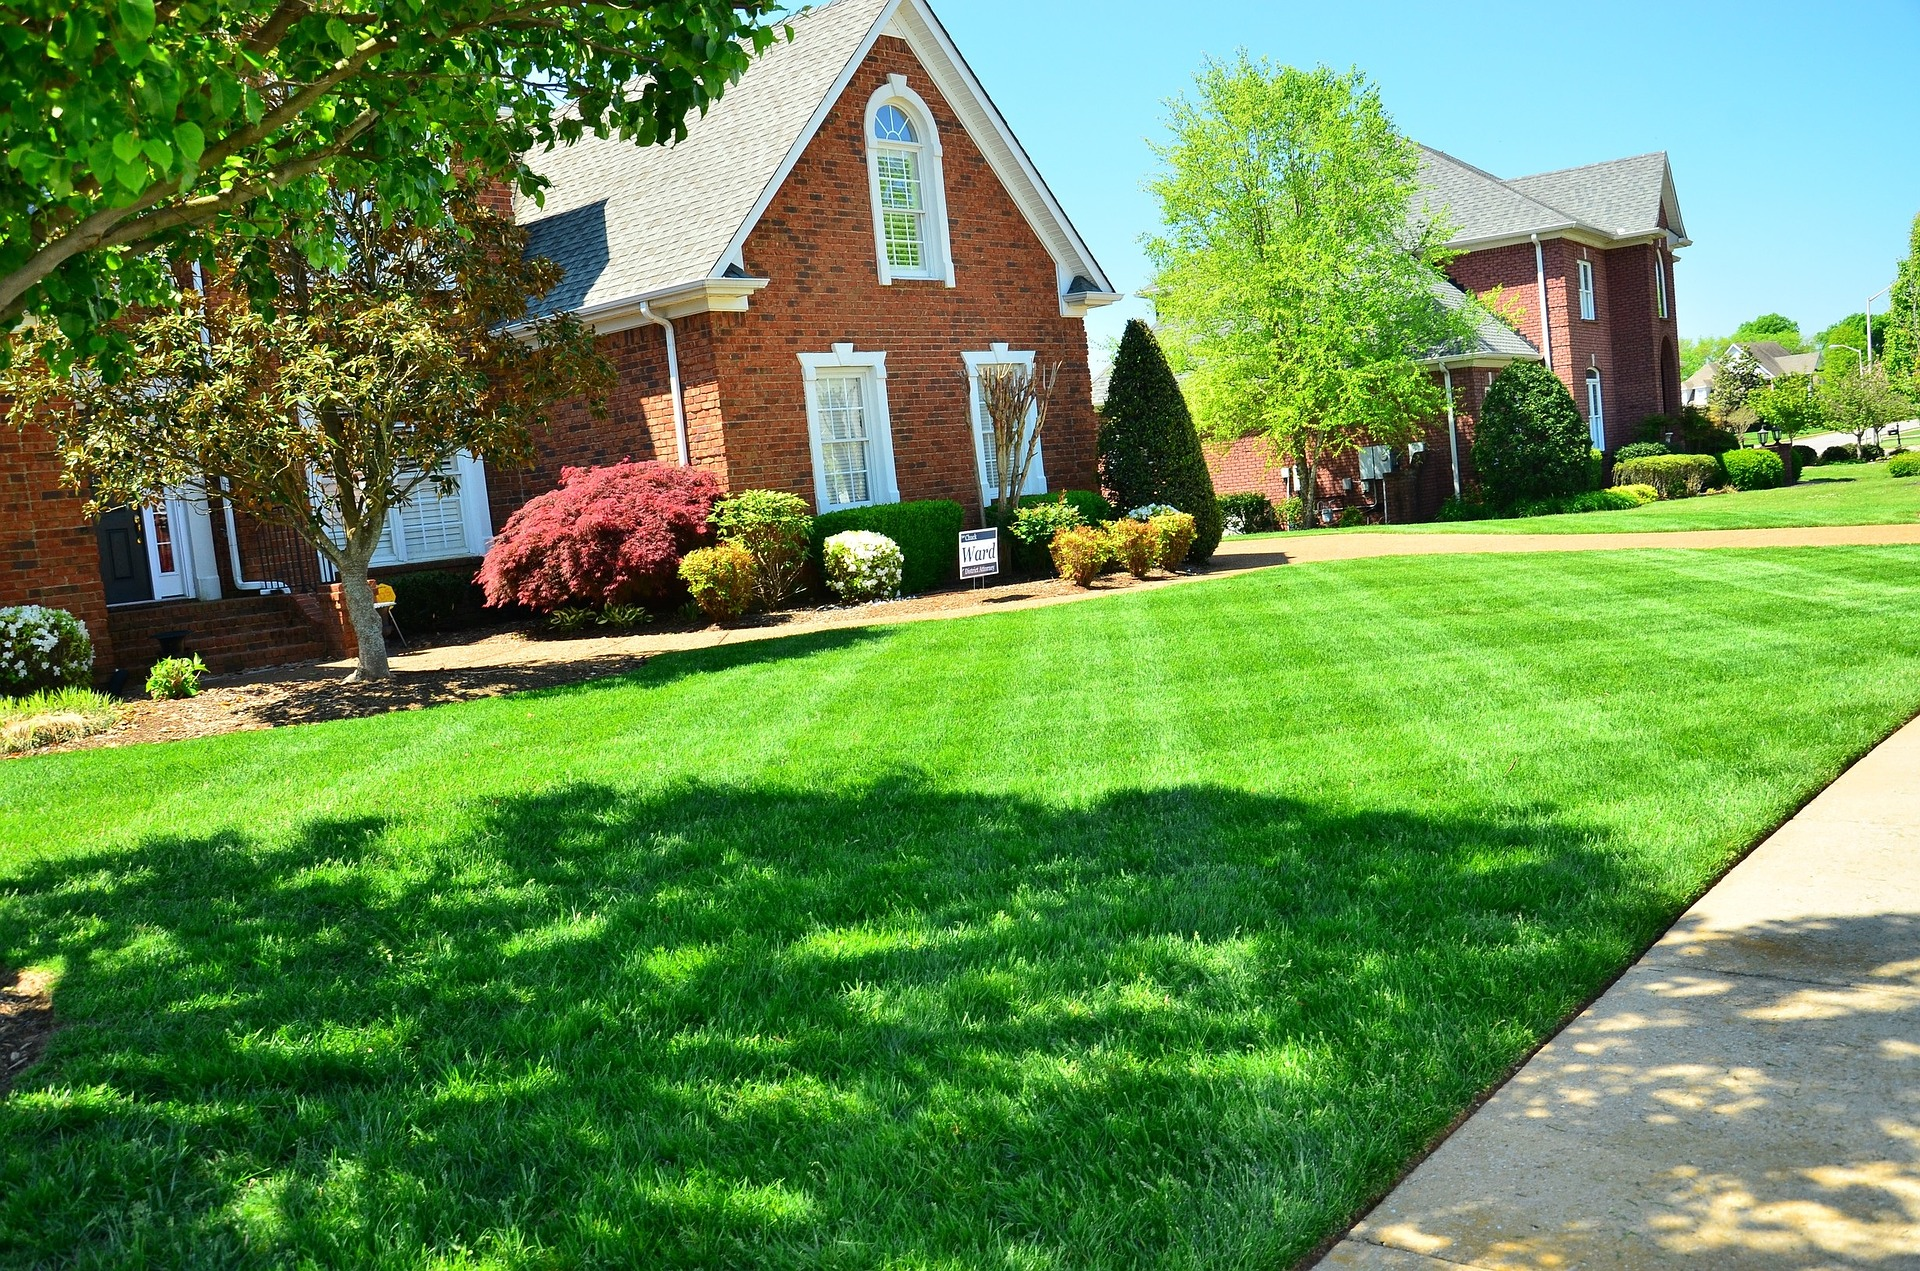 Tree_service__law_care_and_landscape_marketing